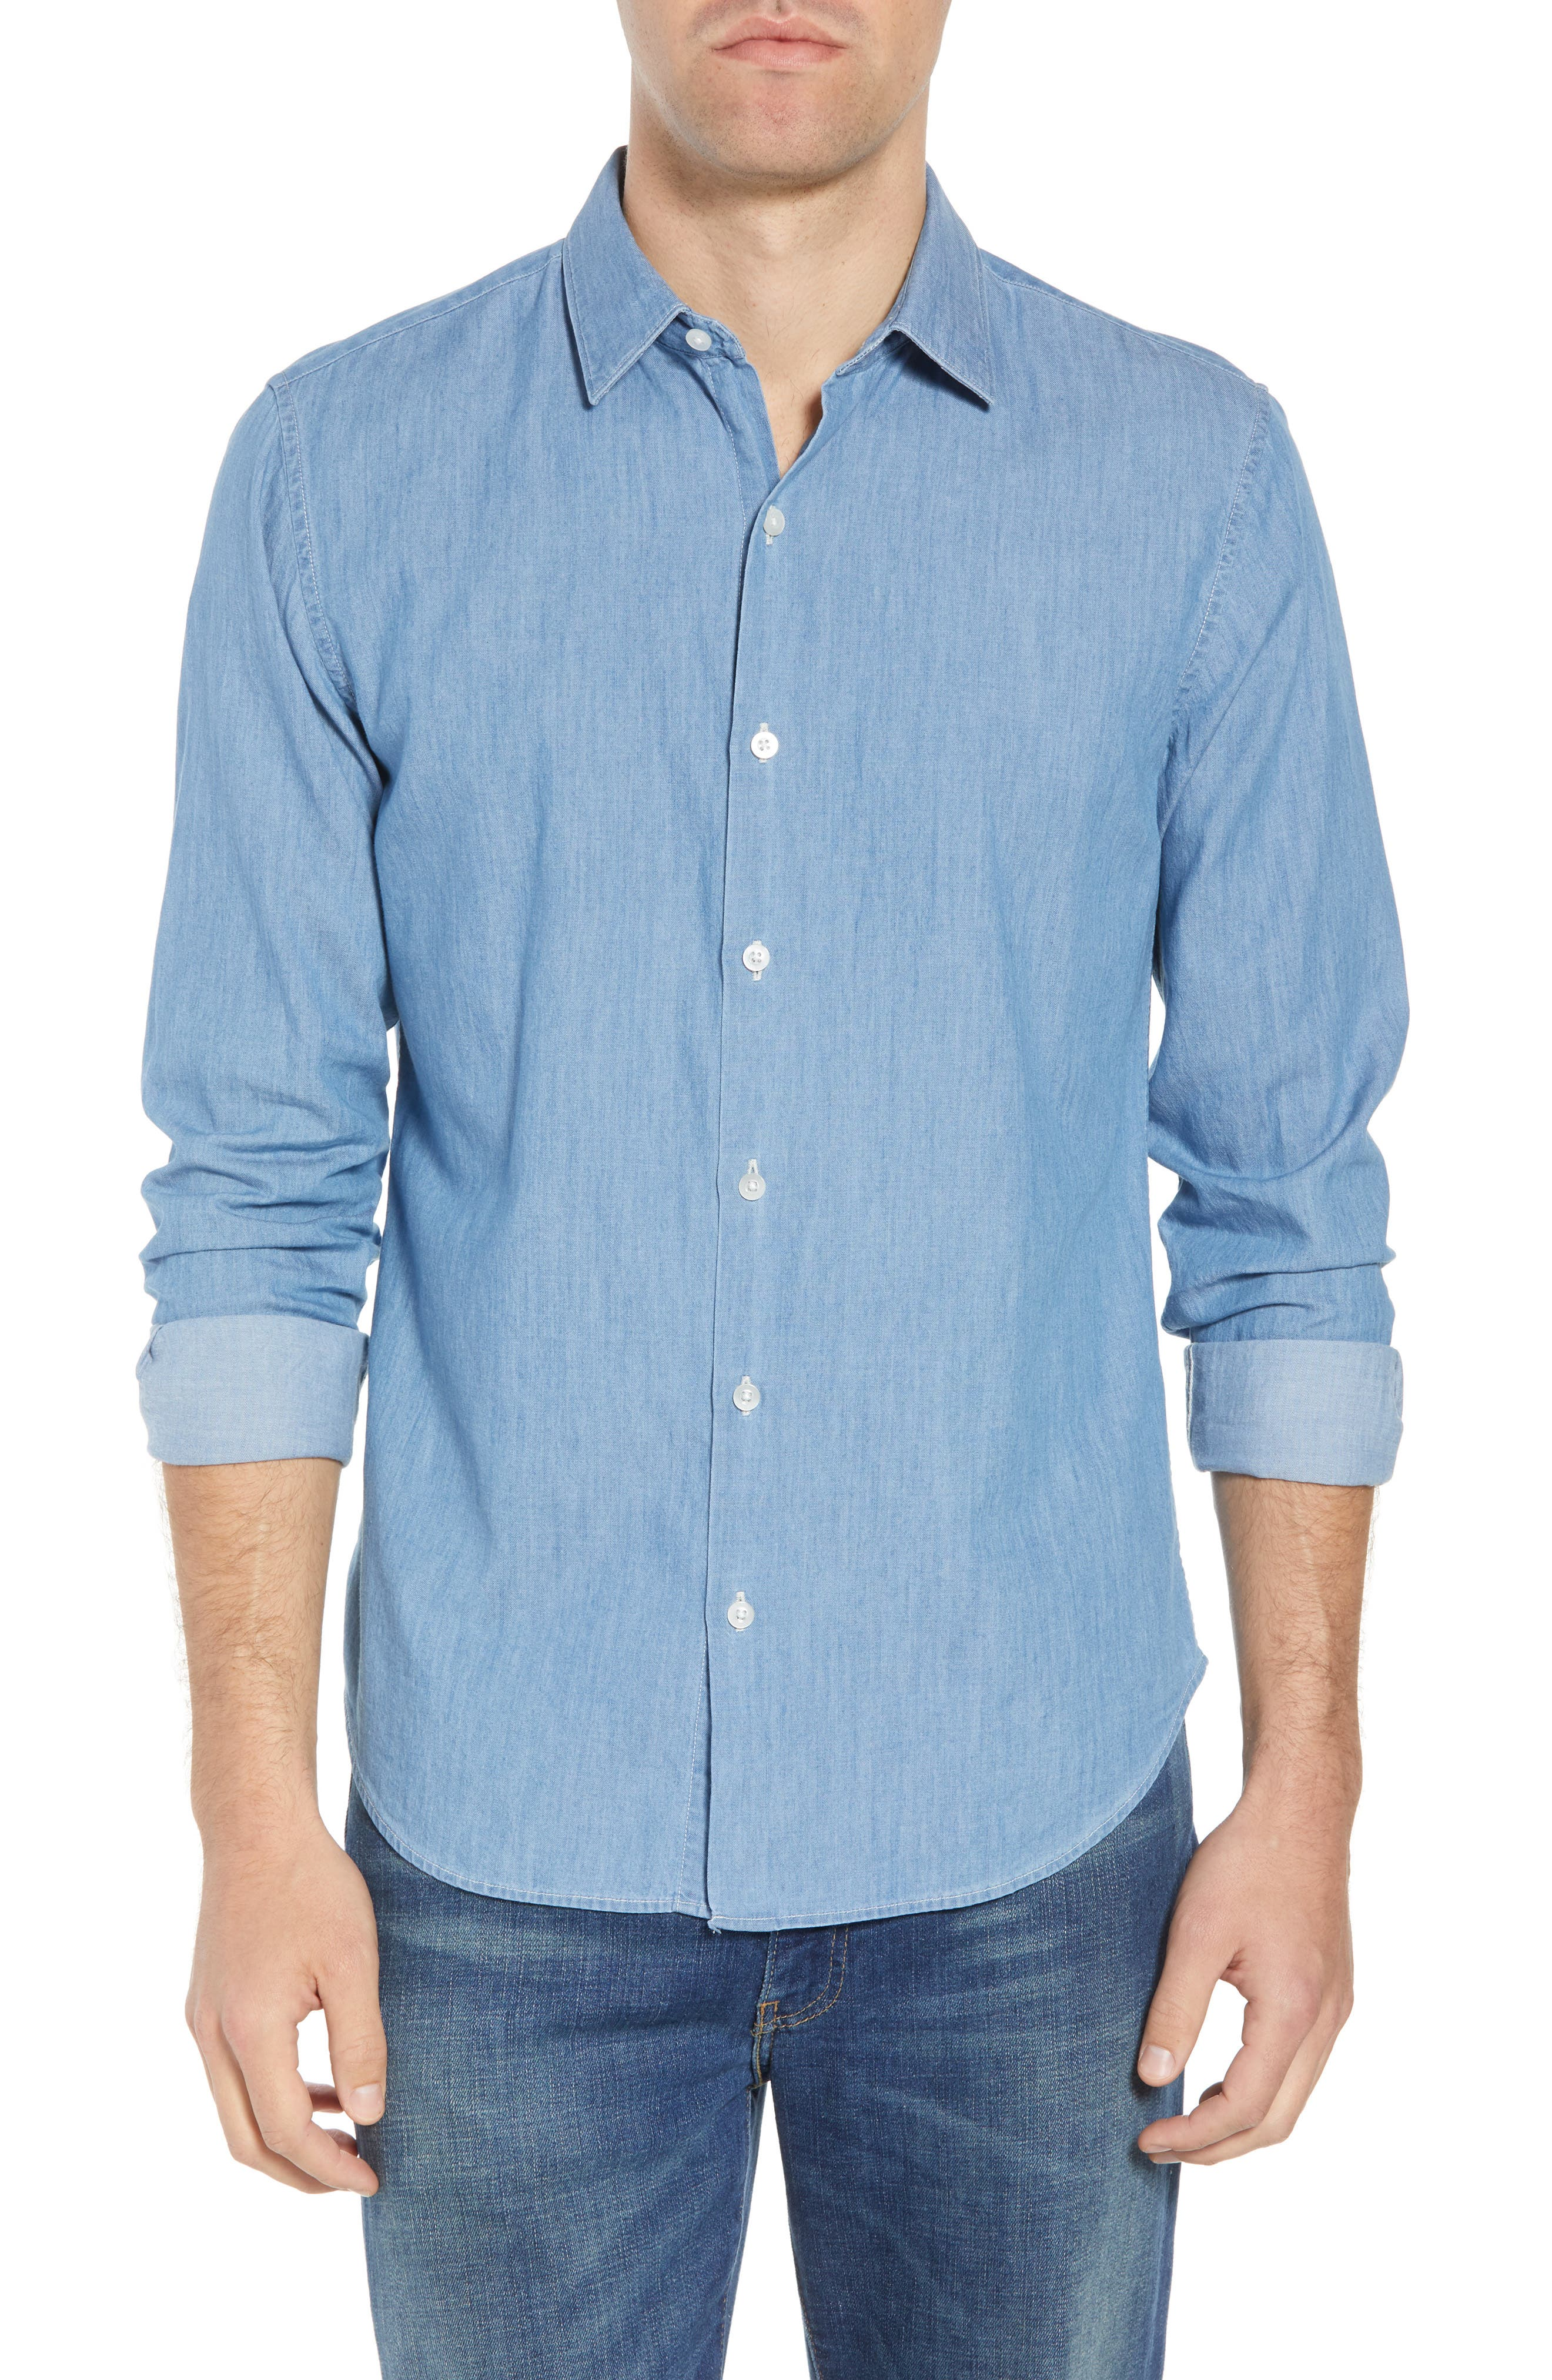 Unbutton Down 2.0 Slim Fit Chambray Sport Shirt, Main, color, SOLID CHAMBRAY